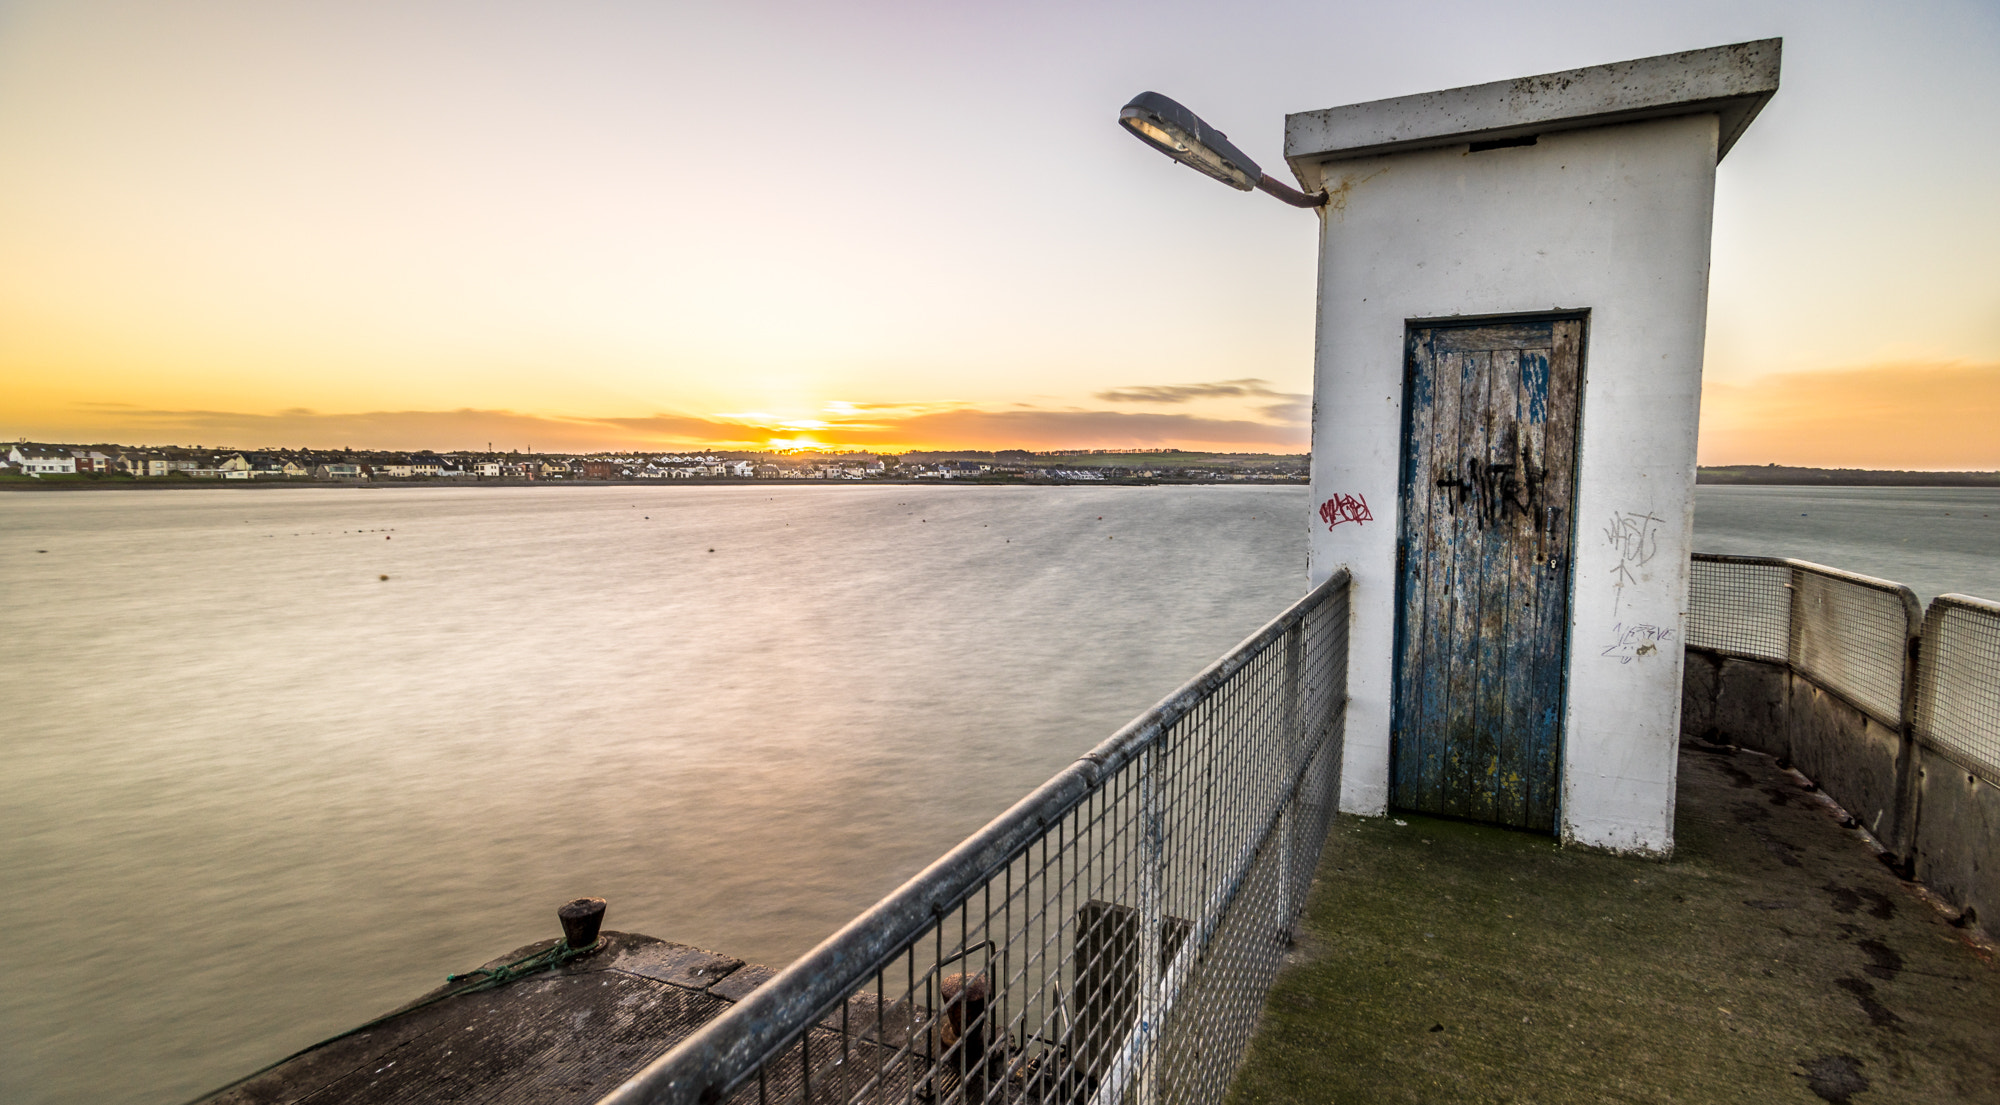 Tara St Station to Skerries - 8 ways to travel via train, and line